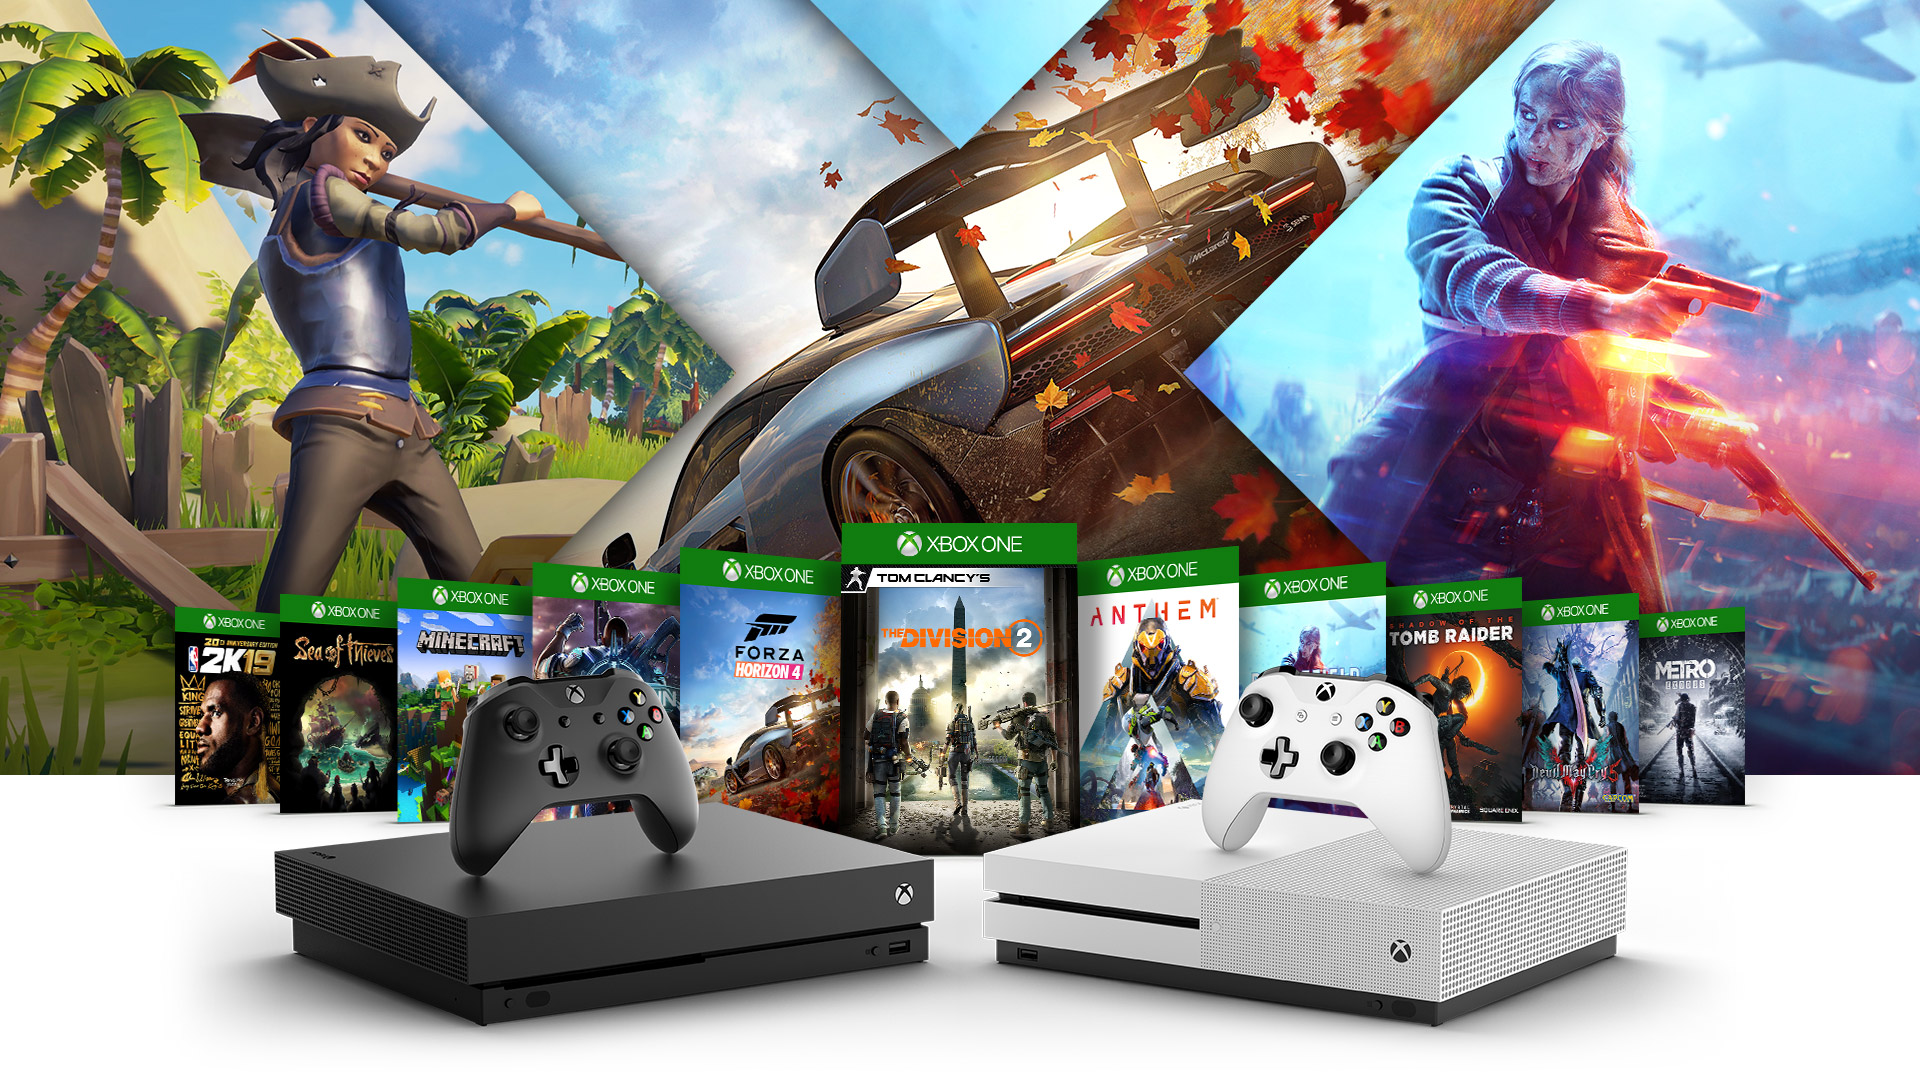 Vista laterale delle console Xbox One X, Xbox One S e Xbox One S All Digital Edition circondate dalle confezioni di Crackdown 3, Sea of Thieves, Minecraft, Madden 19, 2K19, Forza Horizon 4, Fallout 76, Battlefield Five, Shadow of the Tomb Raider, PlayerUnknown's Battlegrounds e State of Decay 2